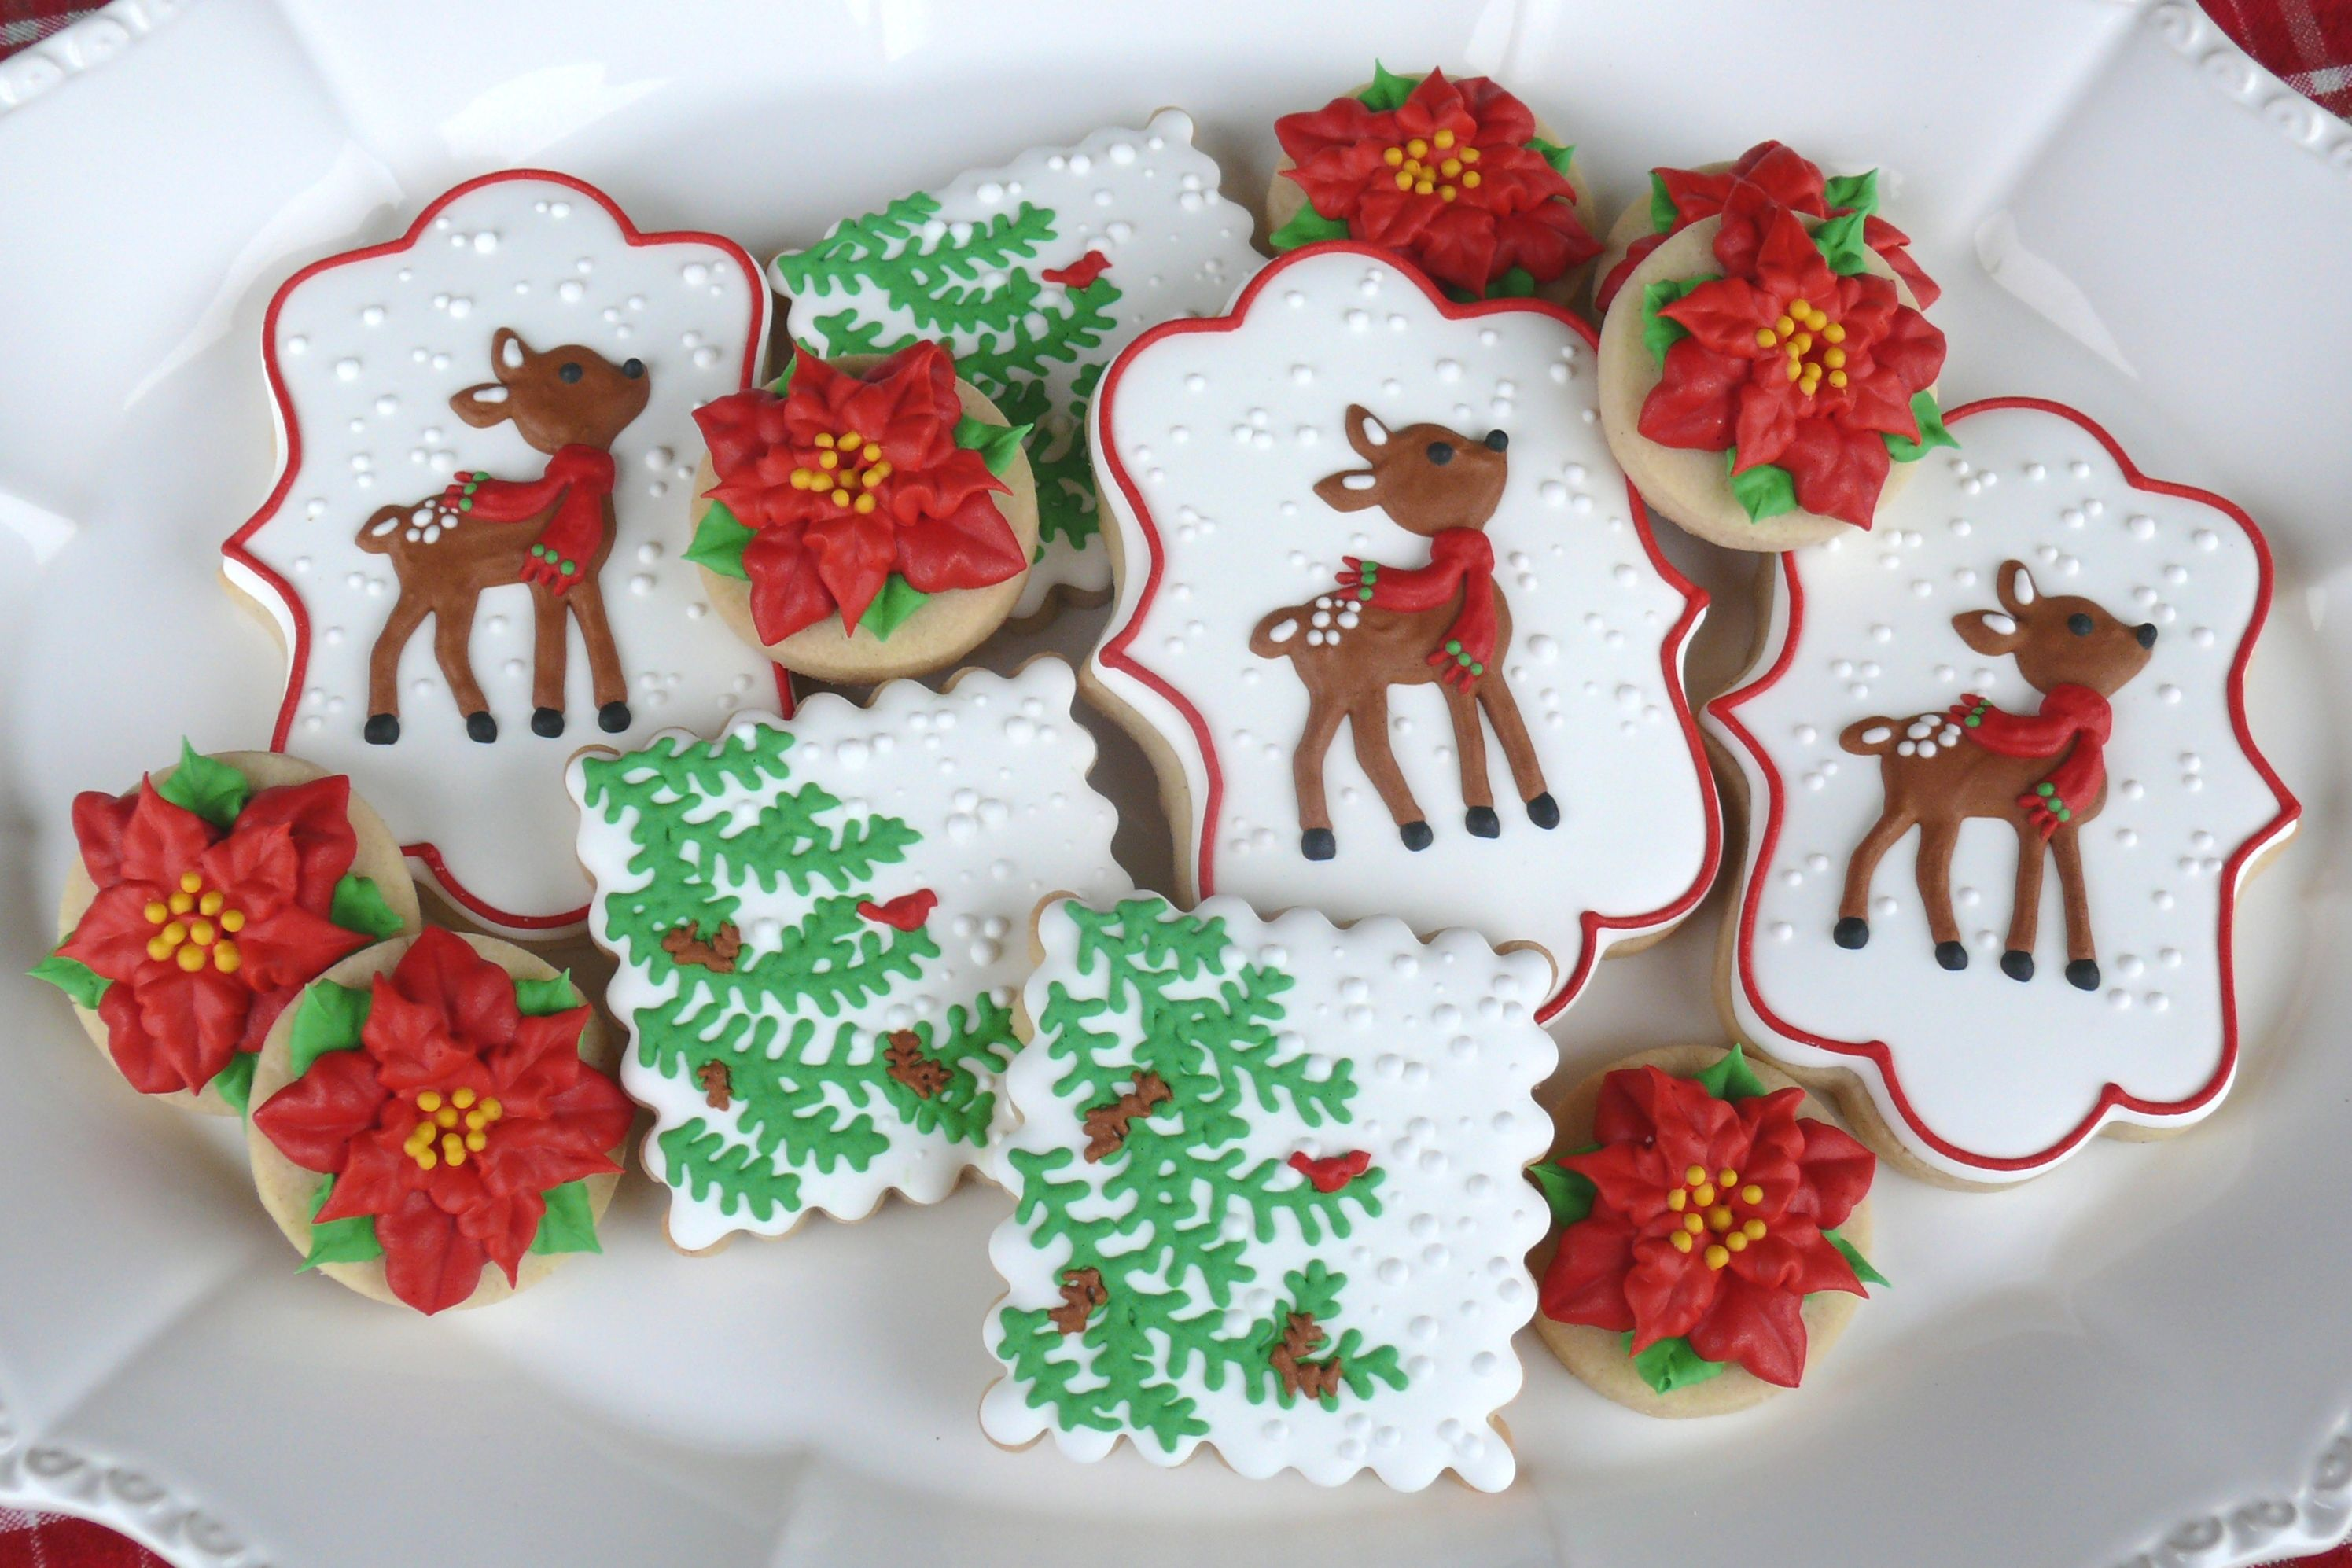 Pin by Peggy Cawelti on Christmas Cookies | Pinterest